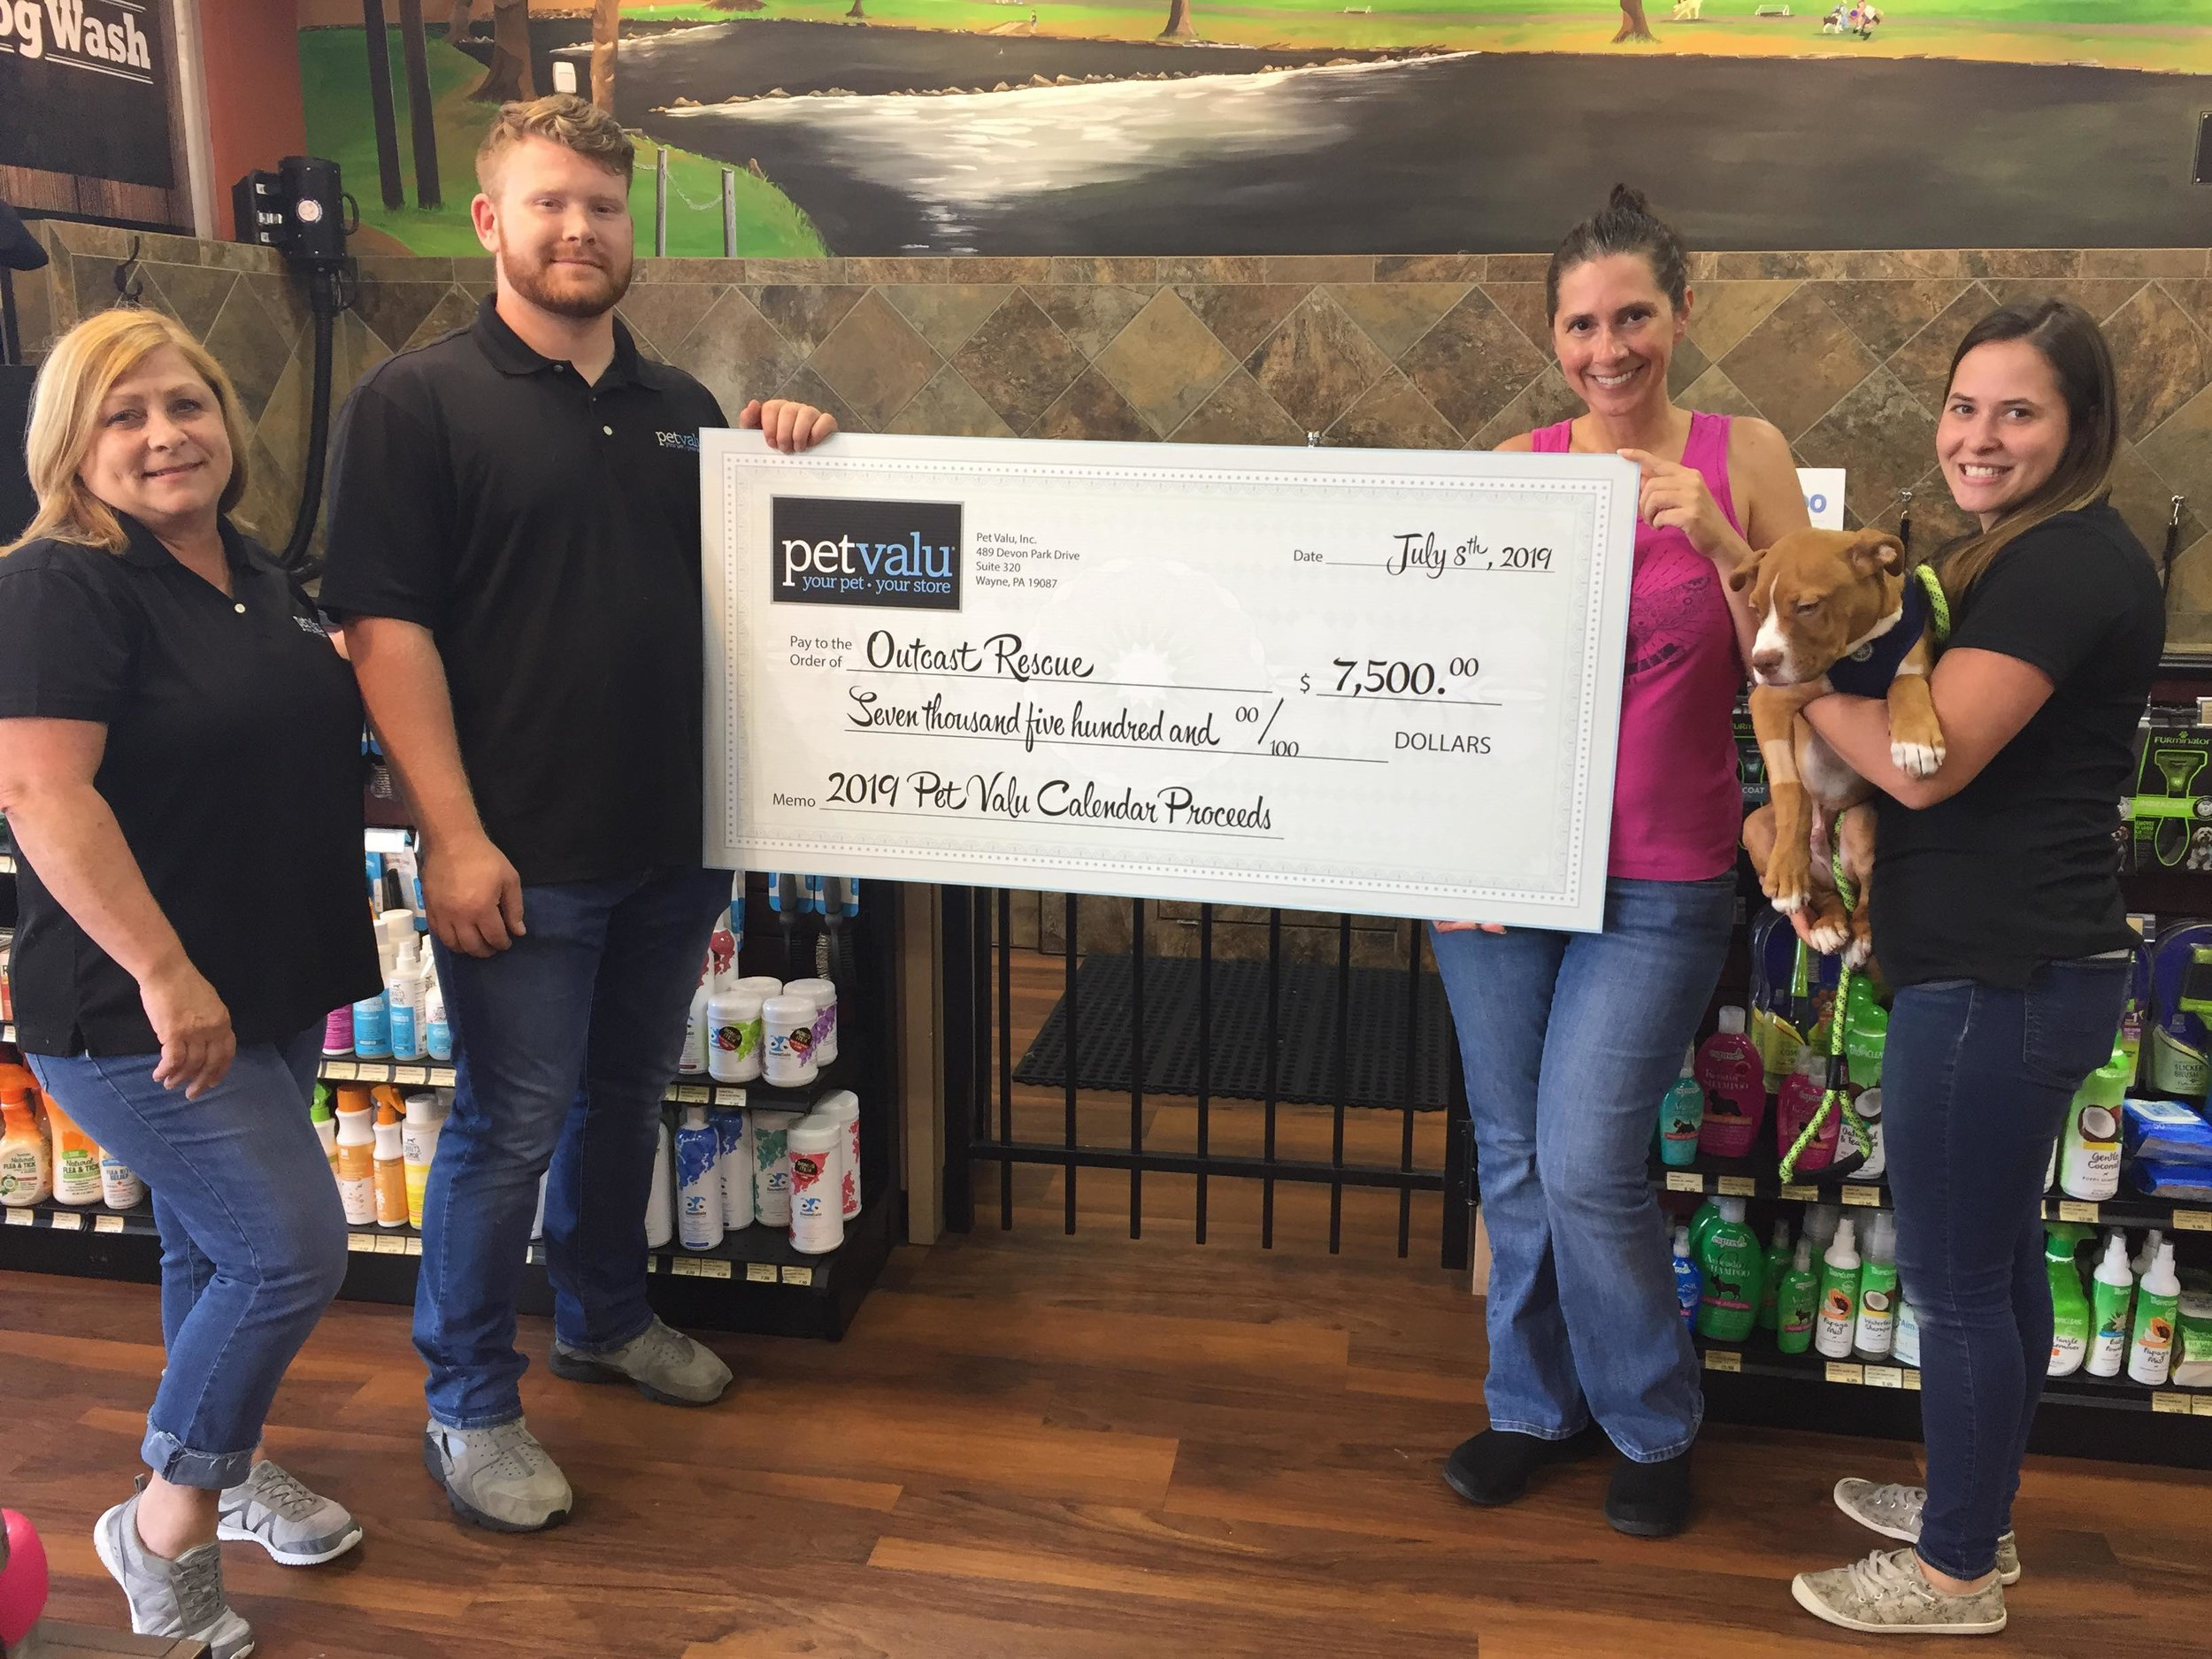 Thank you PetValu for supporting Outcast Rescue!